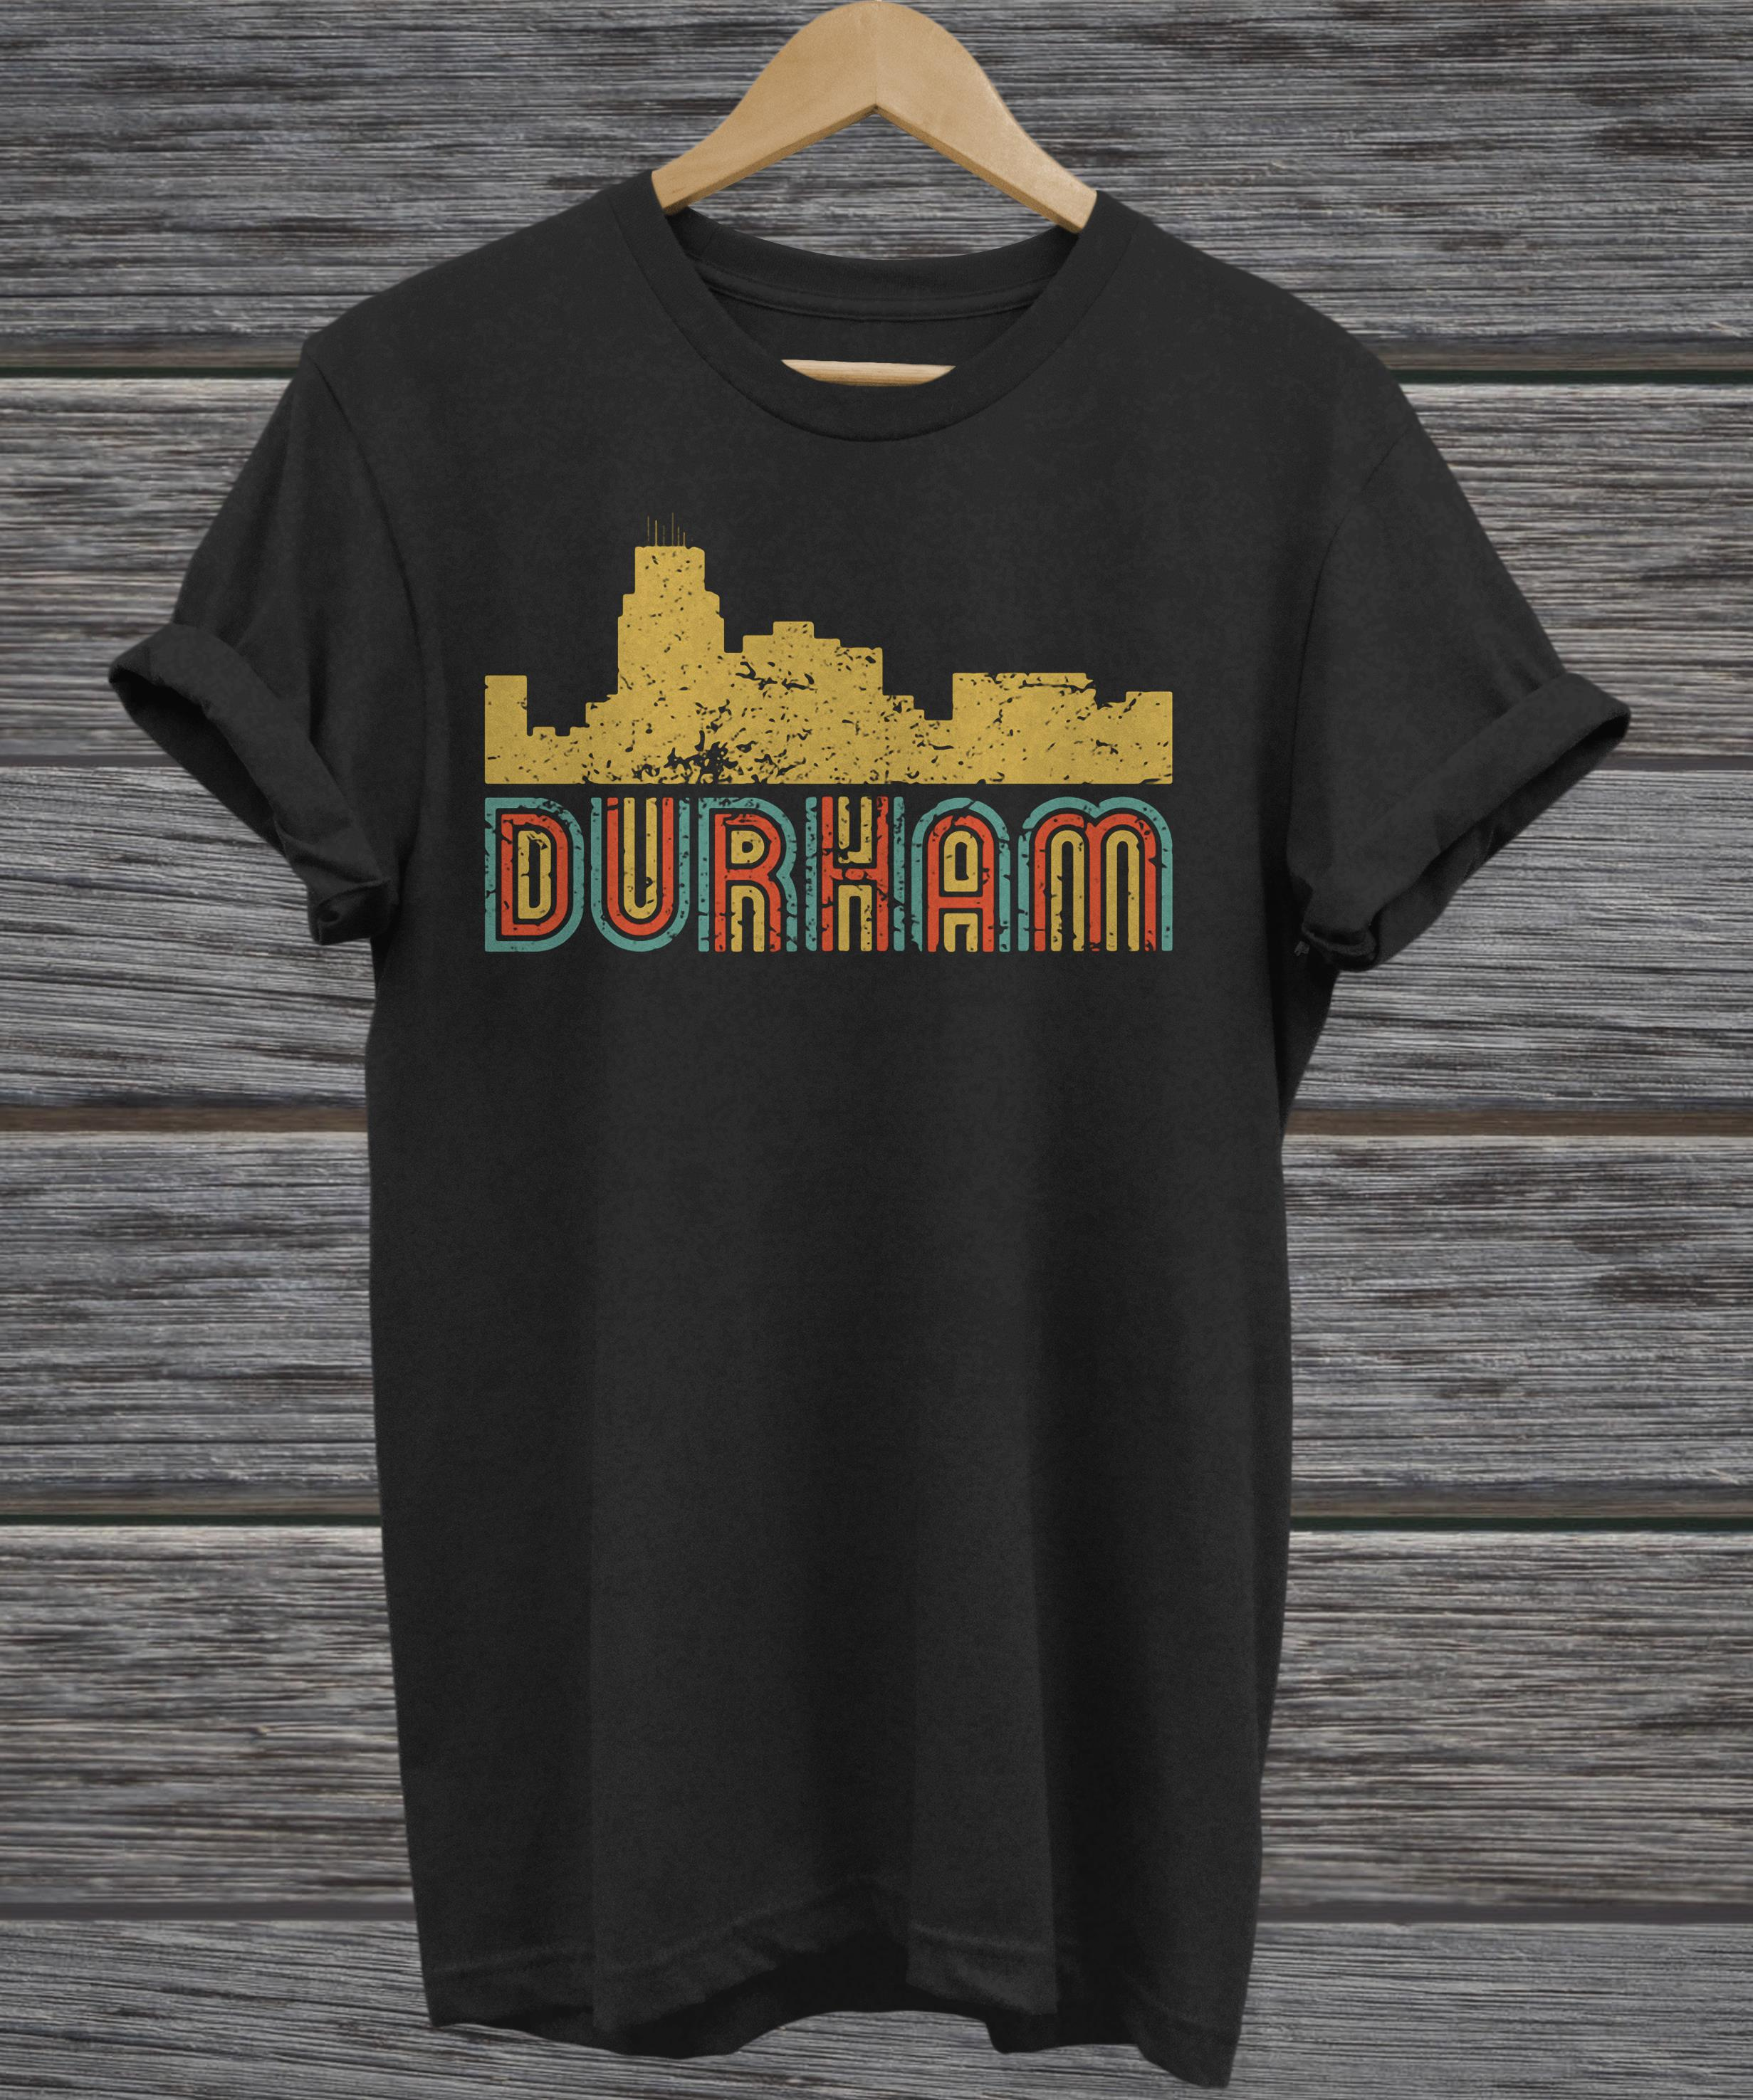 Official Durham explosion tank top